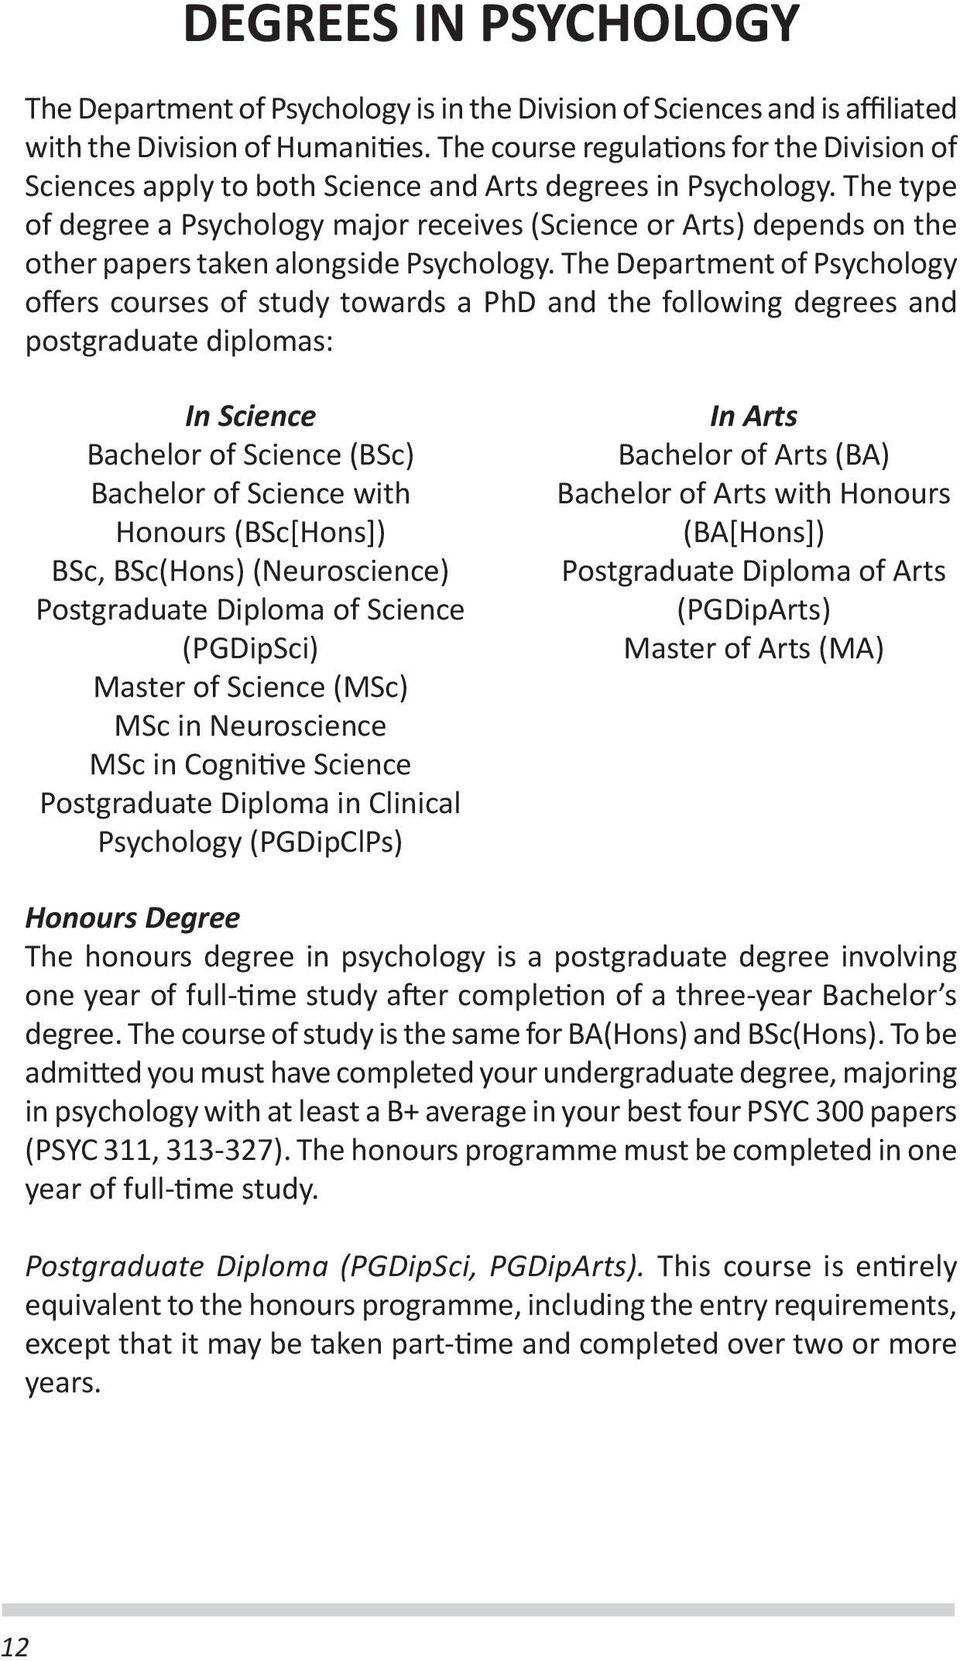 The type of degree a Psychology major receives (Science or Arts) depends on the other papers taken alongside Psychology.